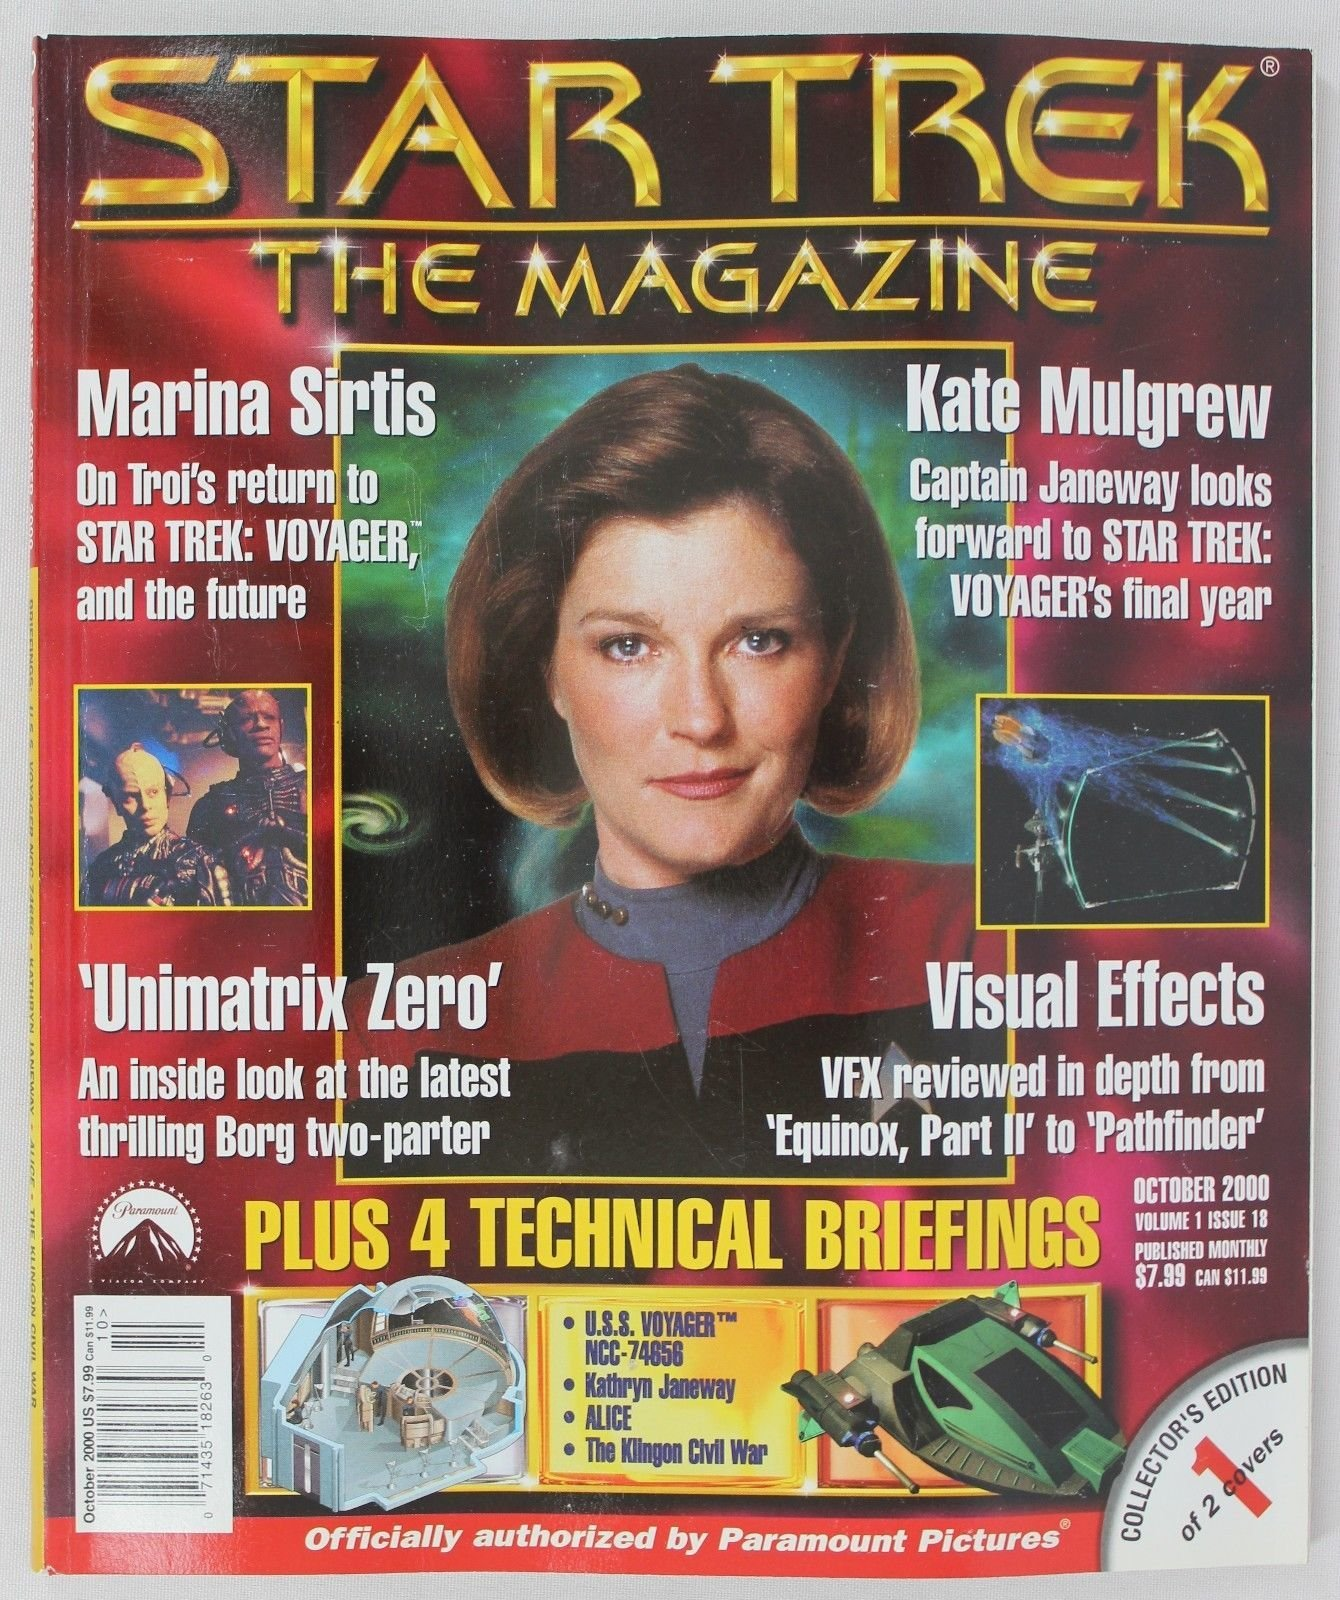 Download Star Trek  The Magazine  Issue 18  October 2000 ebook